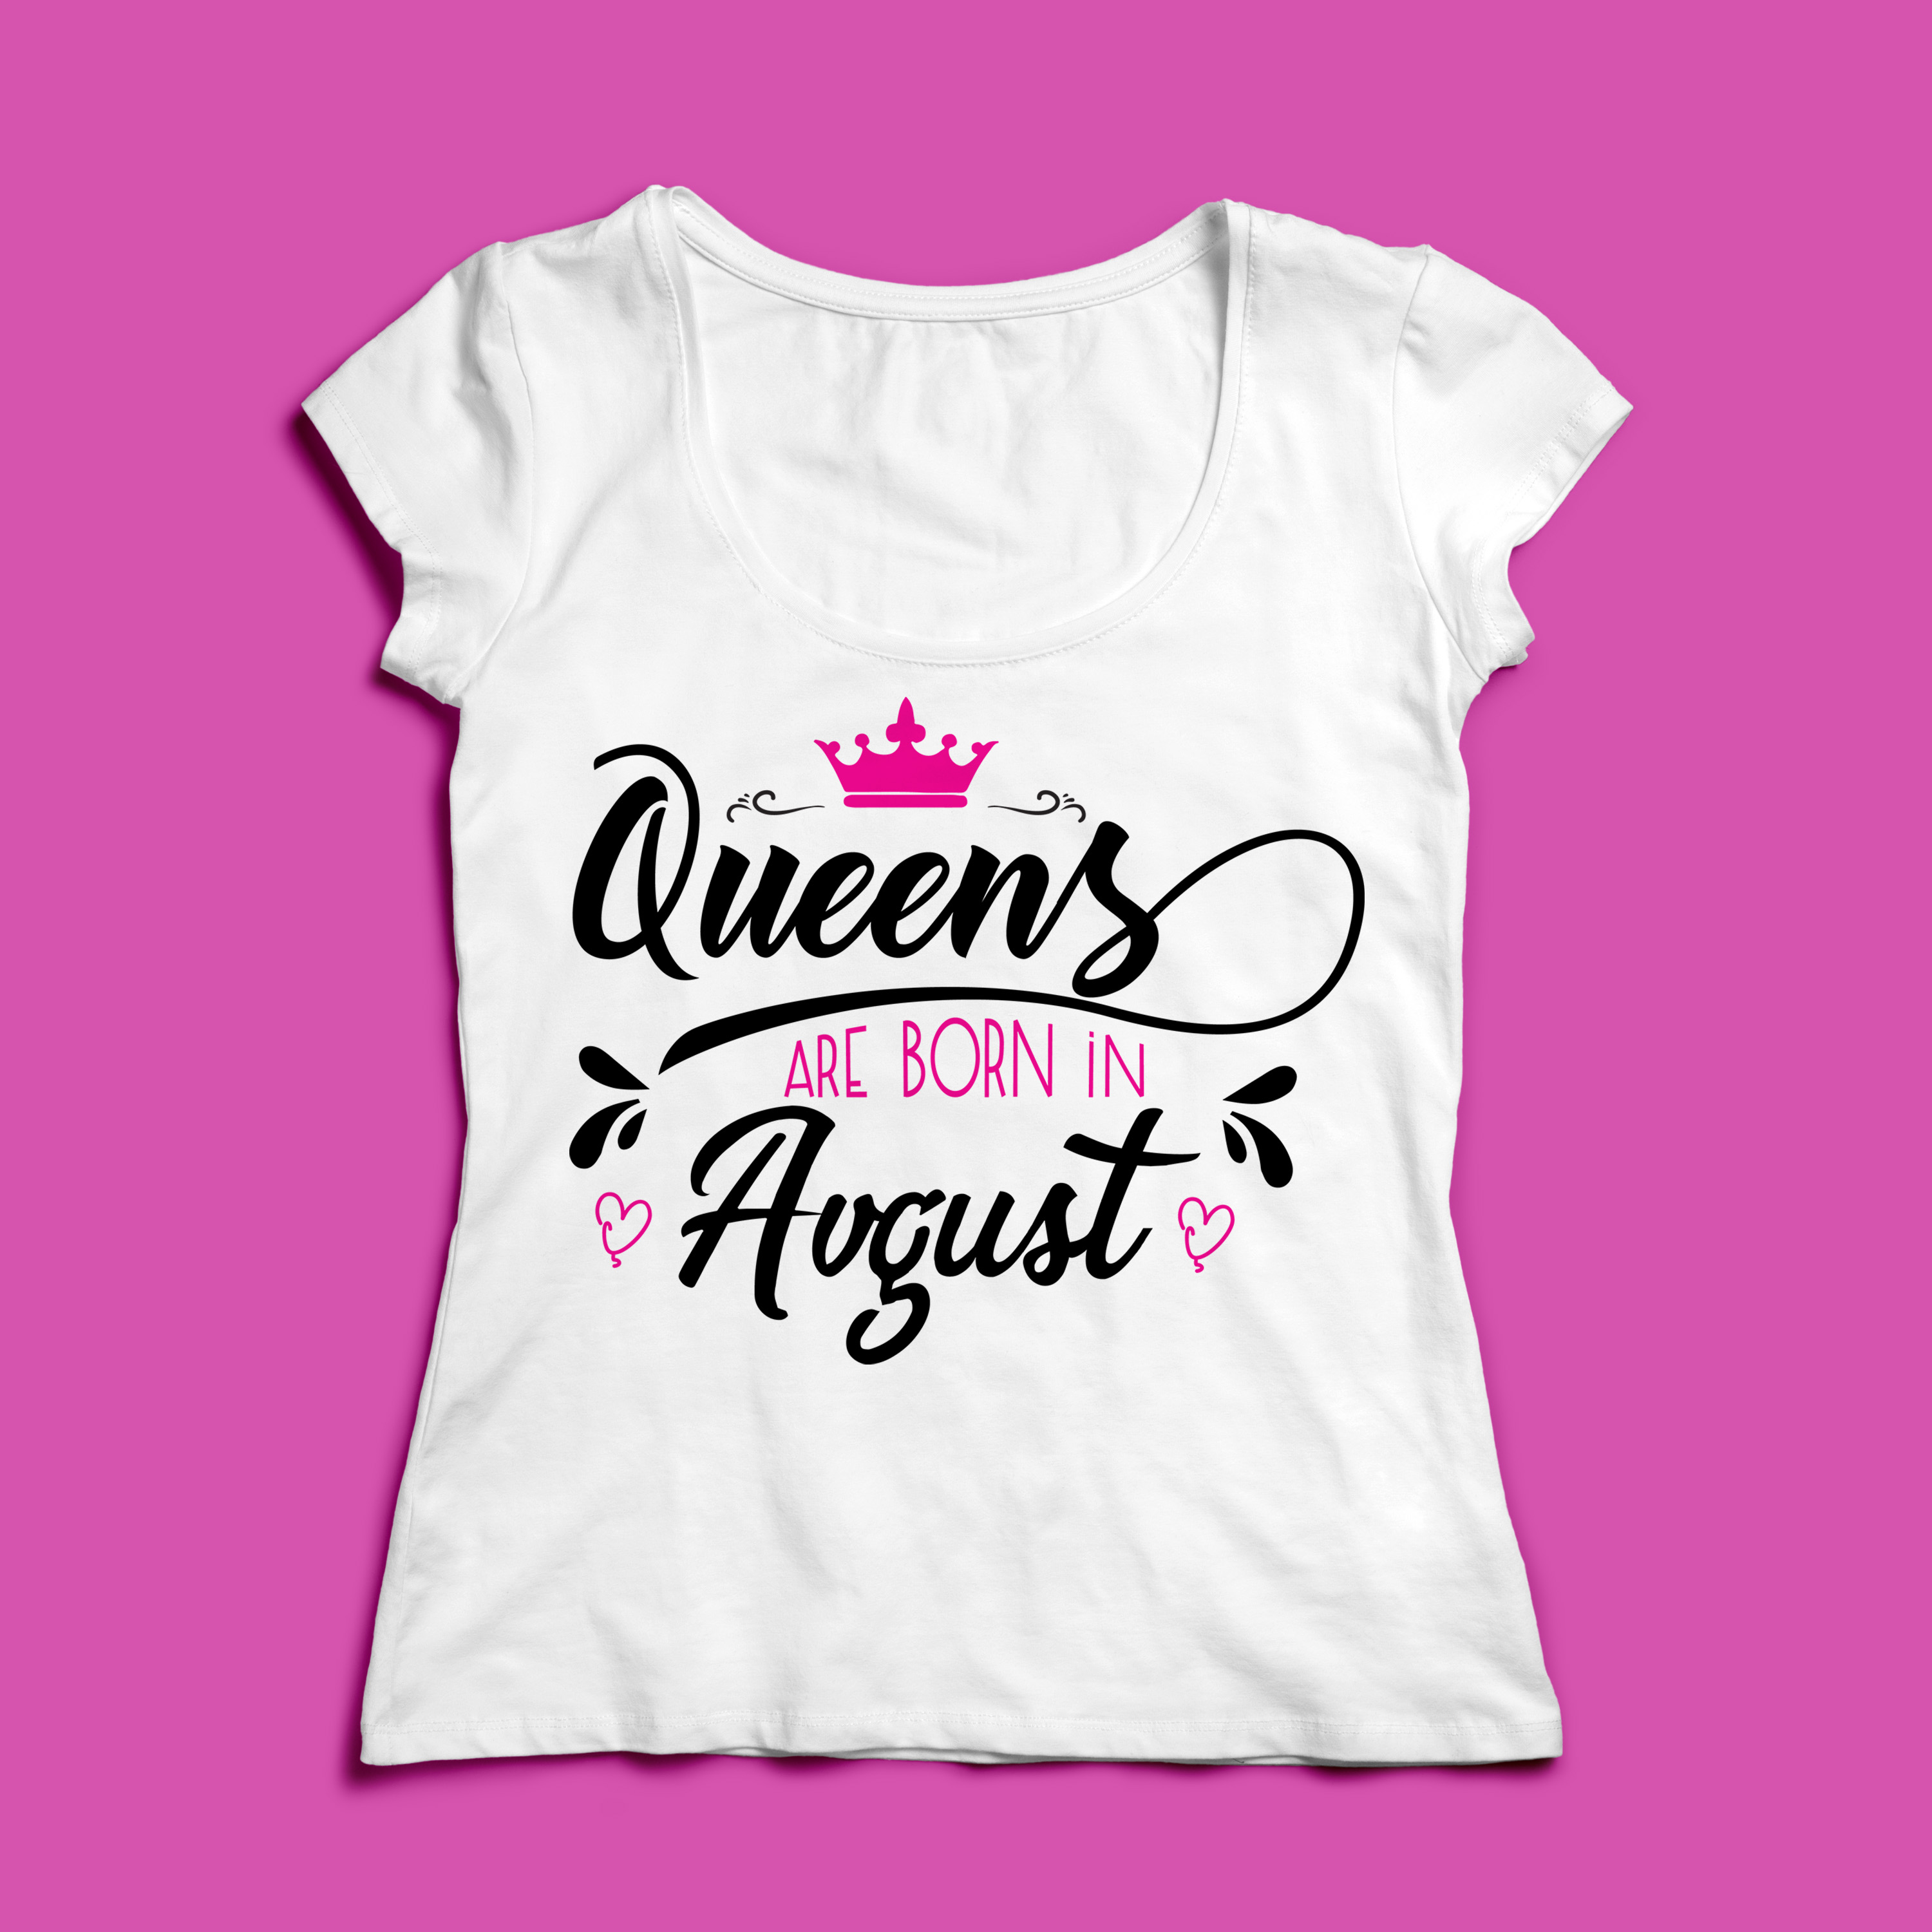 Queens are born in ... Every 12 months Svg,Dxf,Png,Jpg,Eps v example image 3